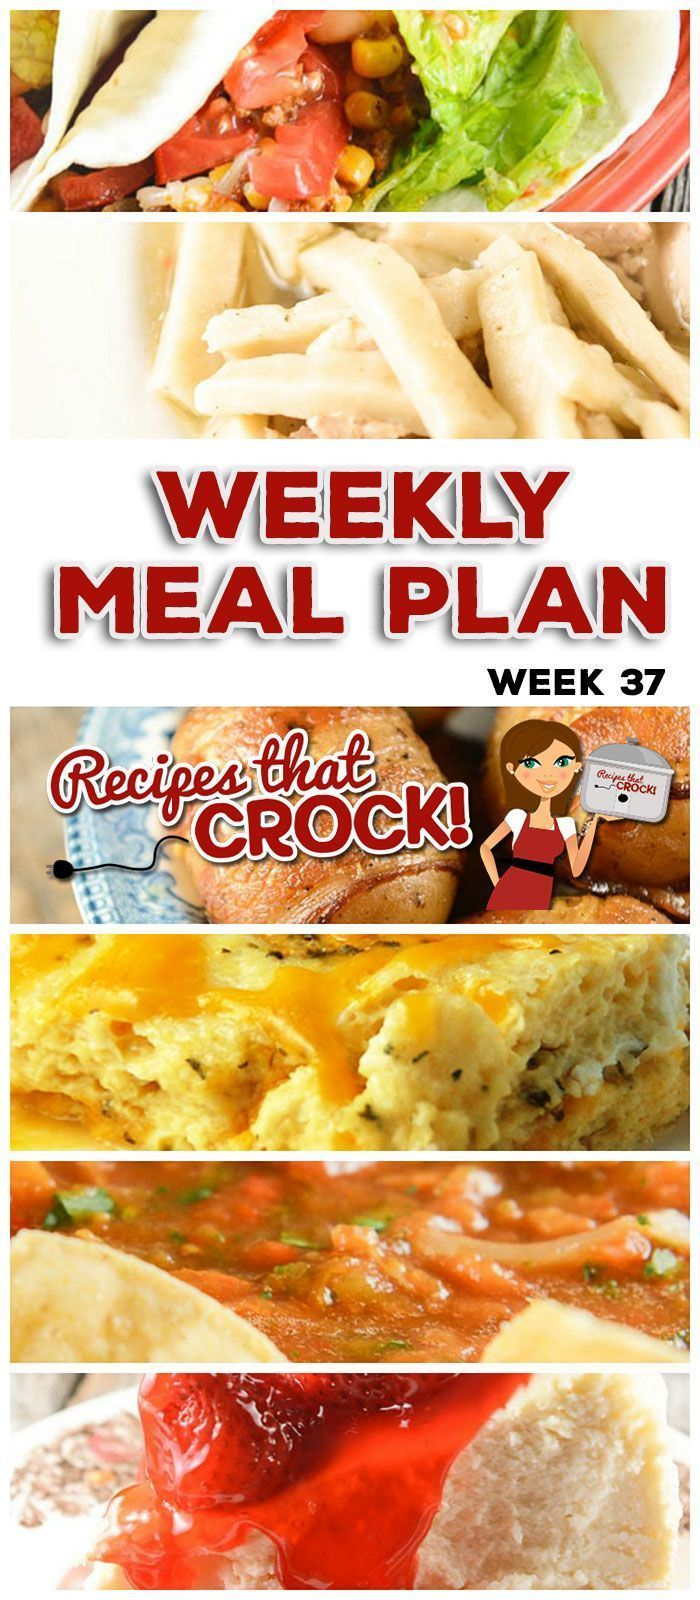 This week's weekly menu features Crock Pot Brown Sugar Pineapple Pork Roast, Crock Pot Broccoli Cheese Casserole, Crock Pot Beefy Tex Mex Tacos, Crock Pot Homemade Salsa, Slow Cooker Chicken Noodles, Crock Pot Seafood Gumbo, Easy Crock Pot Chicken Dinner for Two, Crock Pot Cheese Souffle, Crock Pot Bacon Taters, Crock Pot Cheesecake. #crockpotgumbo This week's weekly menu features Crock Pot Brown Sugar Pineapple Pork Roast, Crock Pot Broccoli Cheese Casserole, Crock Pot Beefy Tex Mex Tacos, Croc #crockpotgumbo